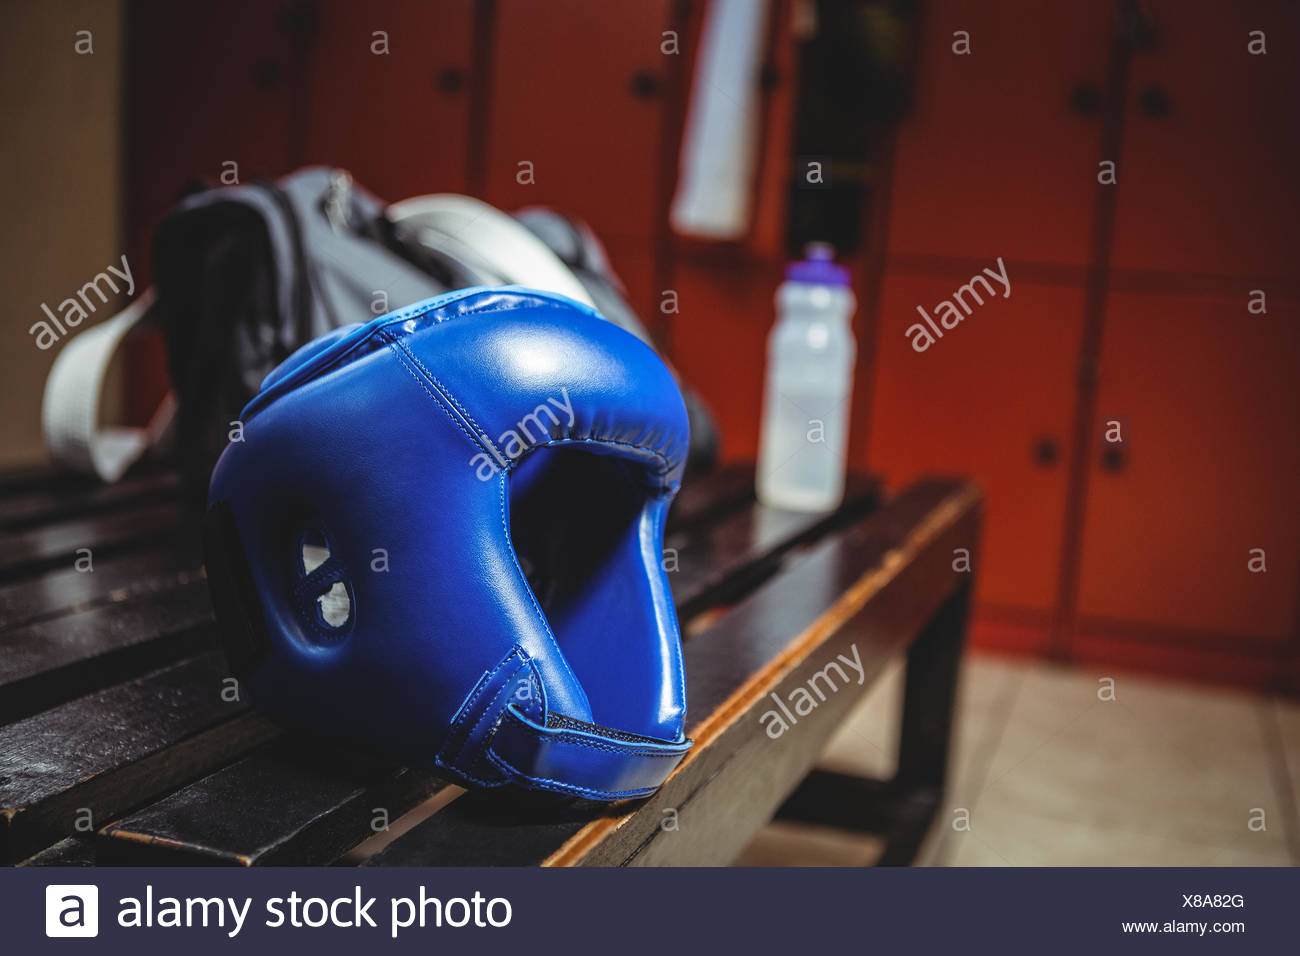 Close-up of boxing headgear - Stock Image